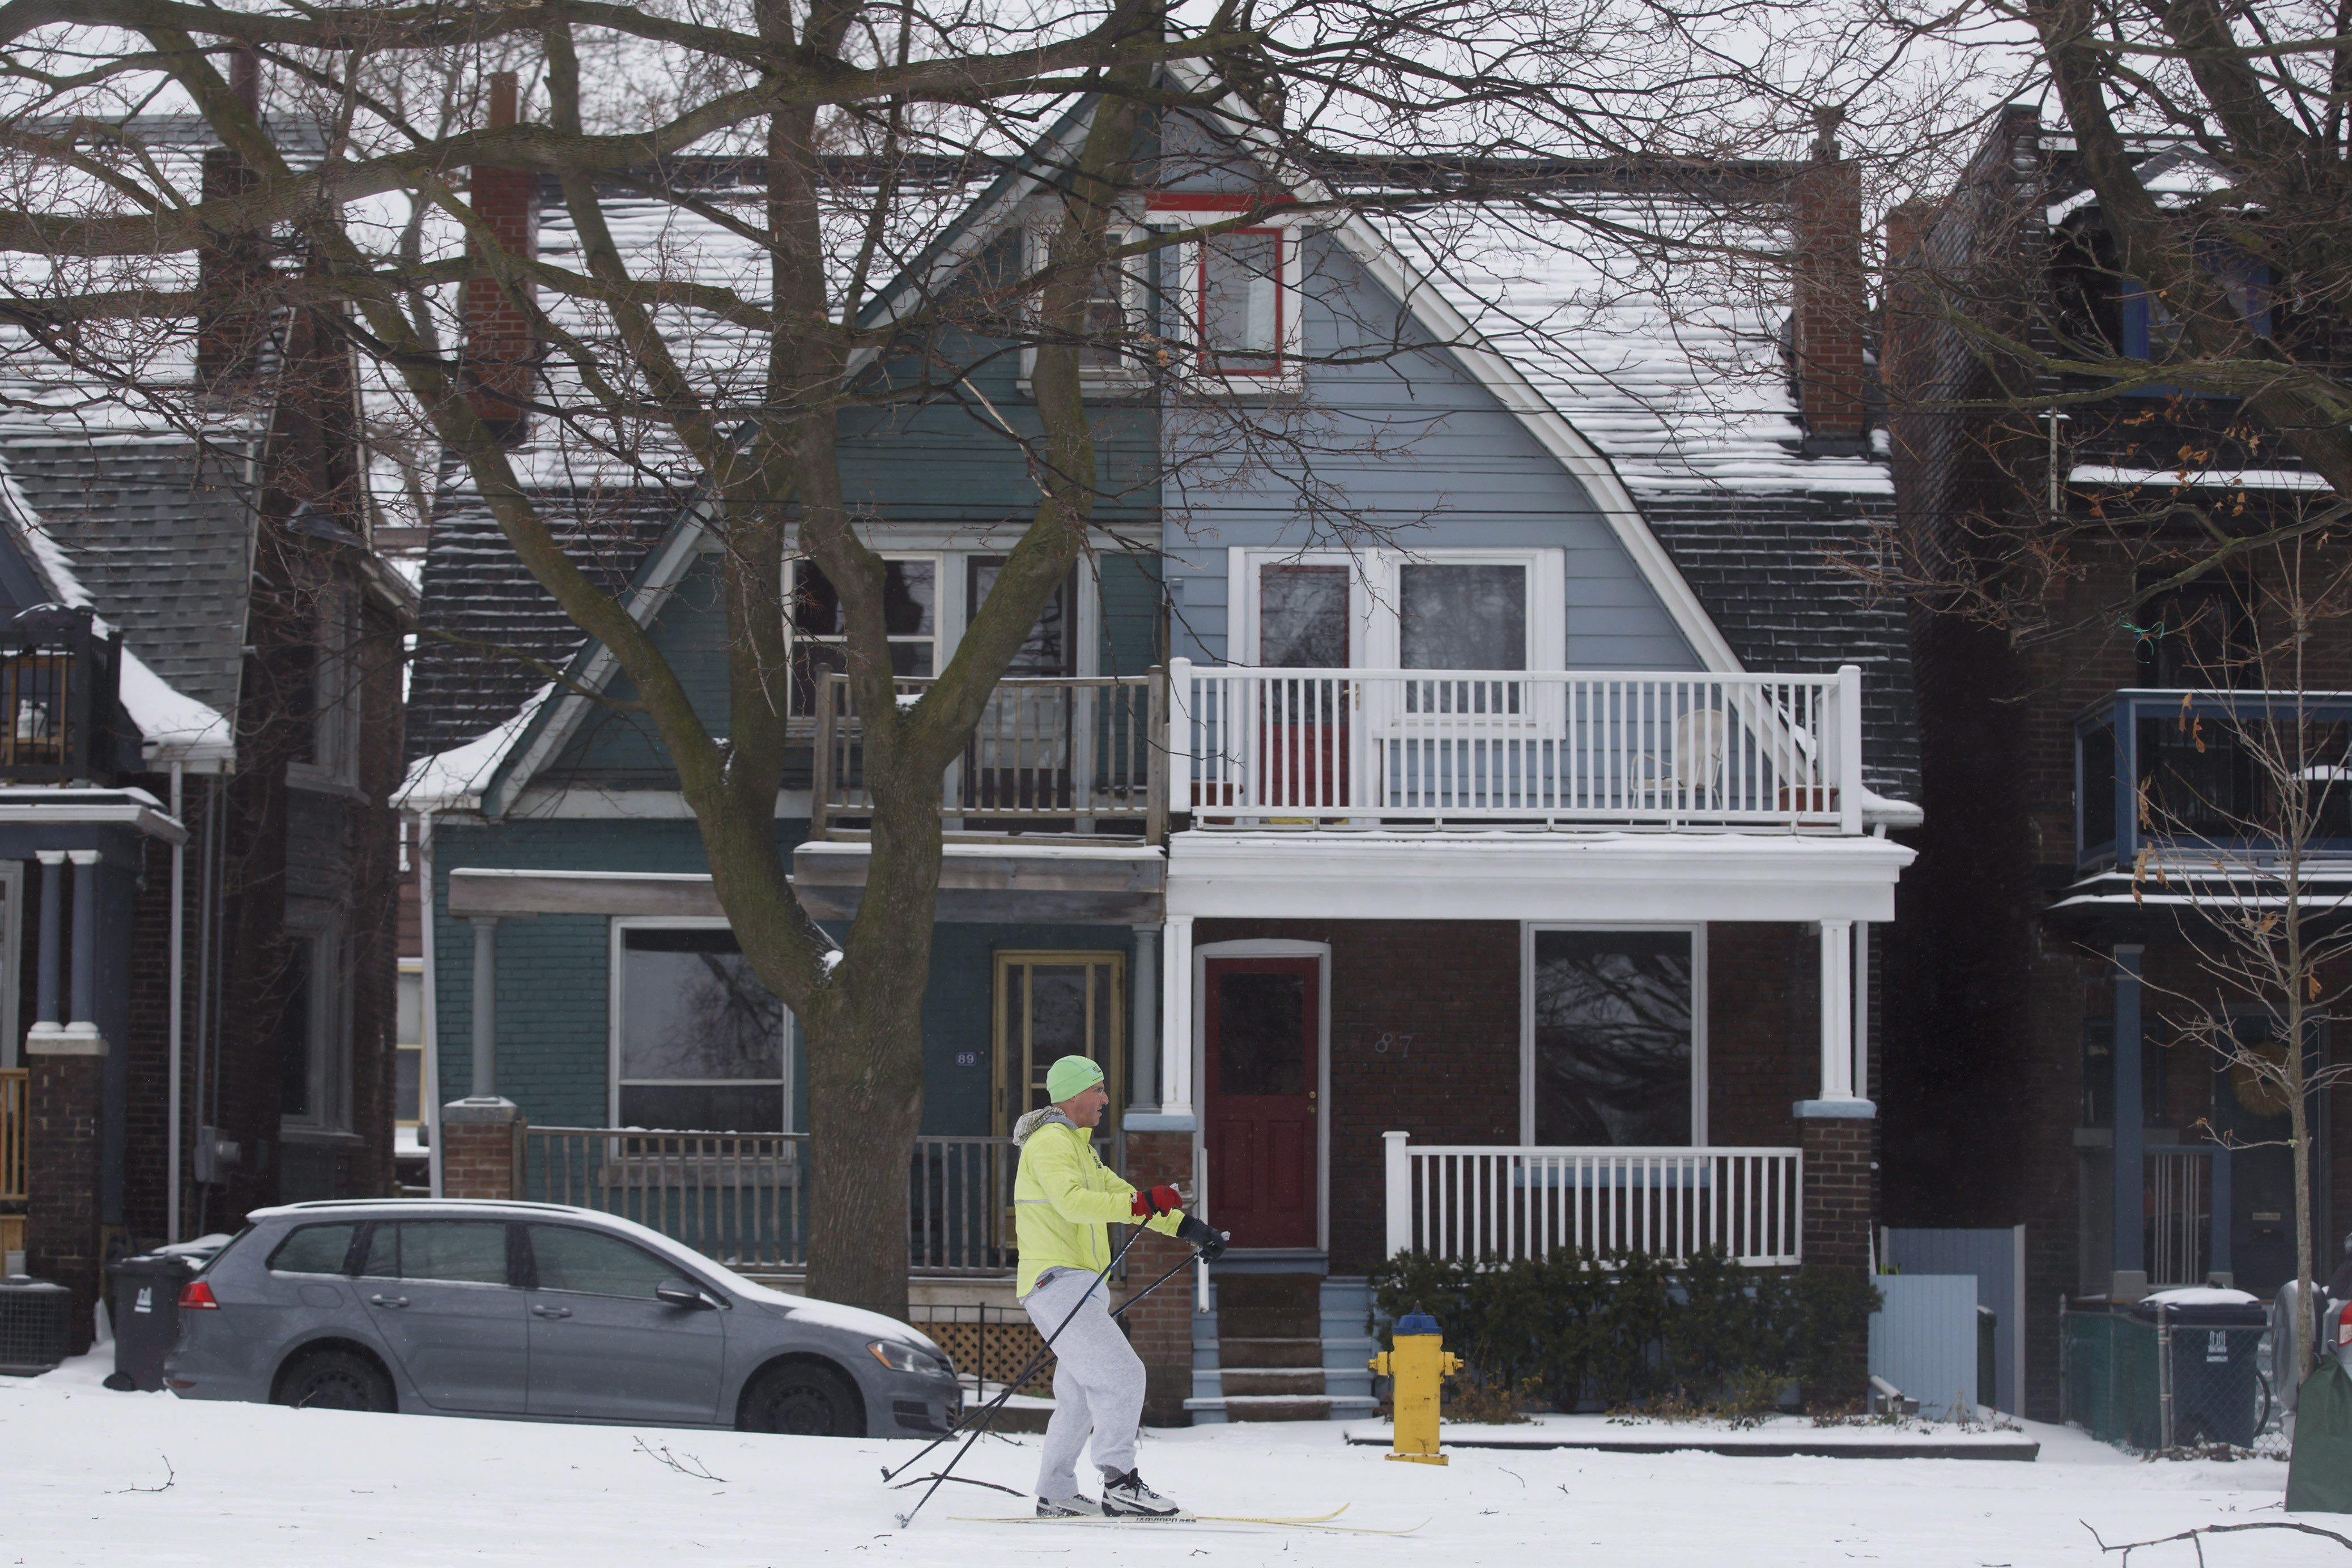 Man on skis in front of Toronto House.